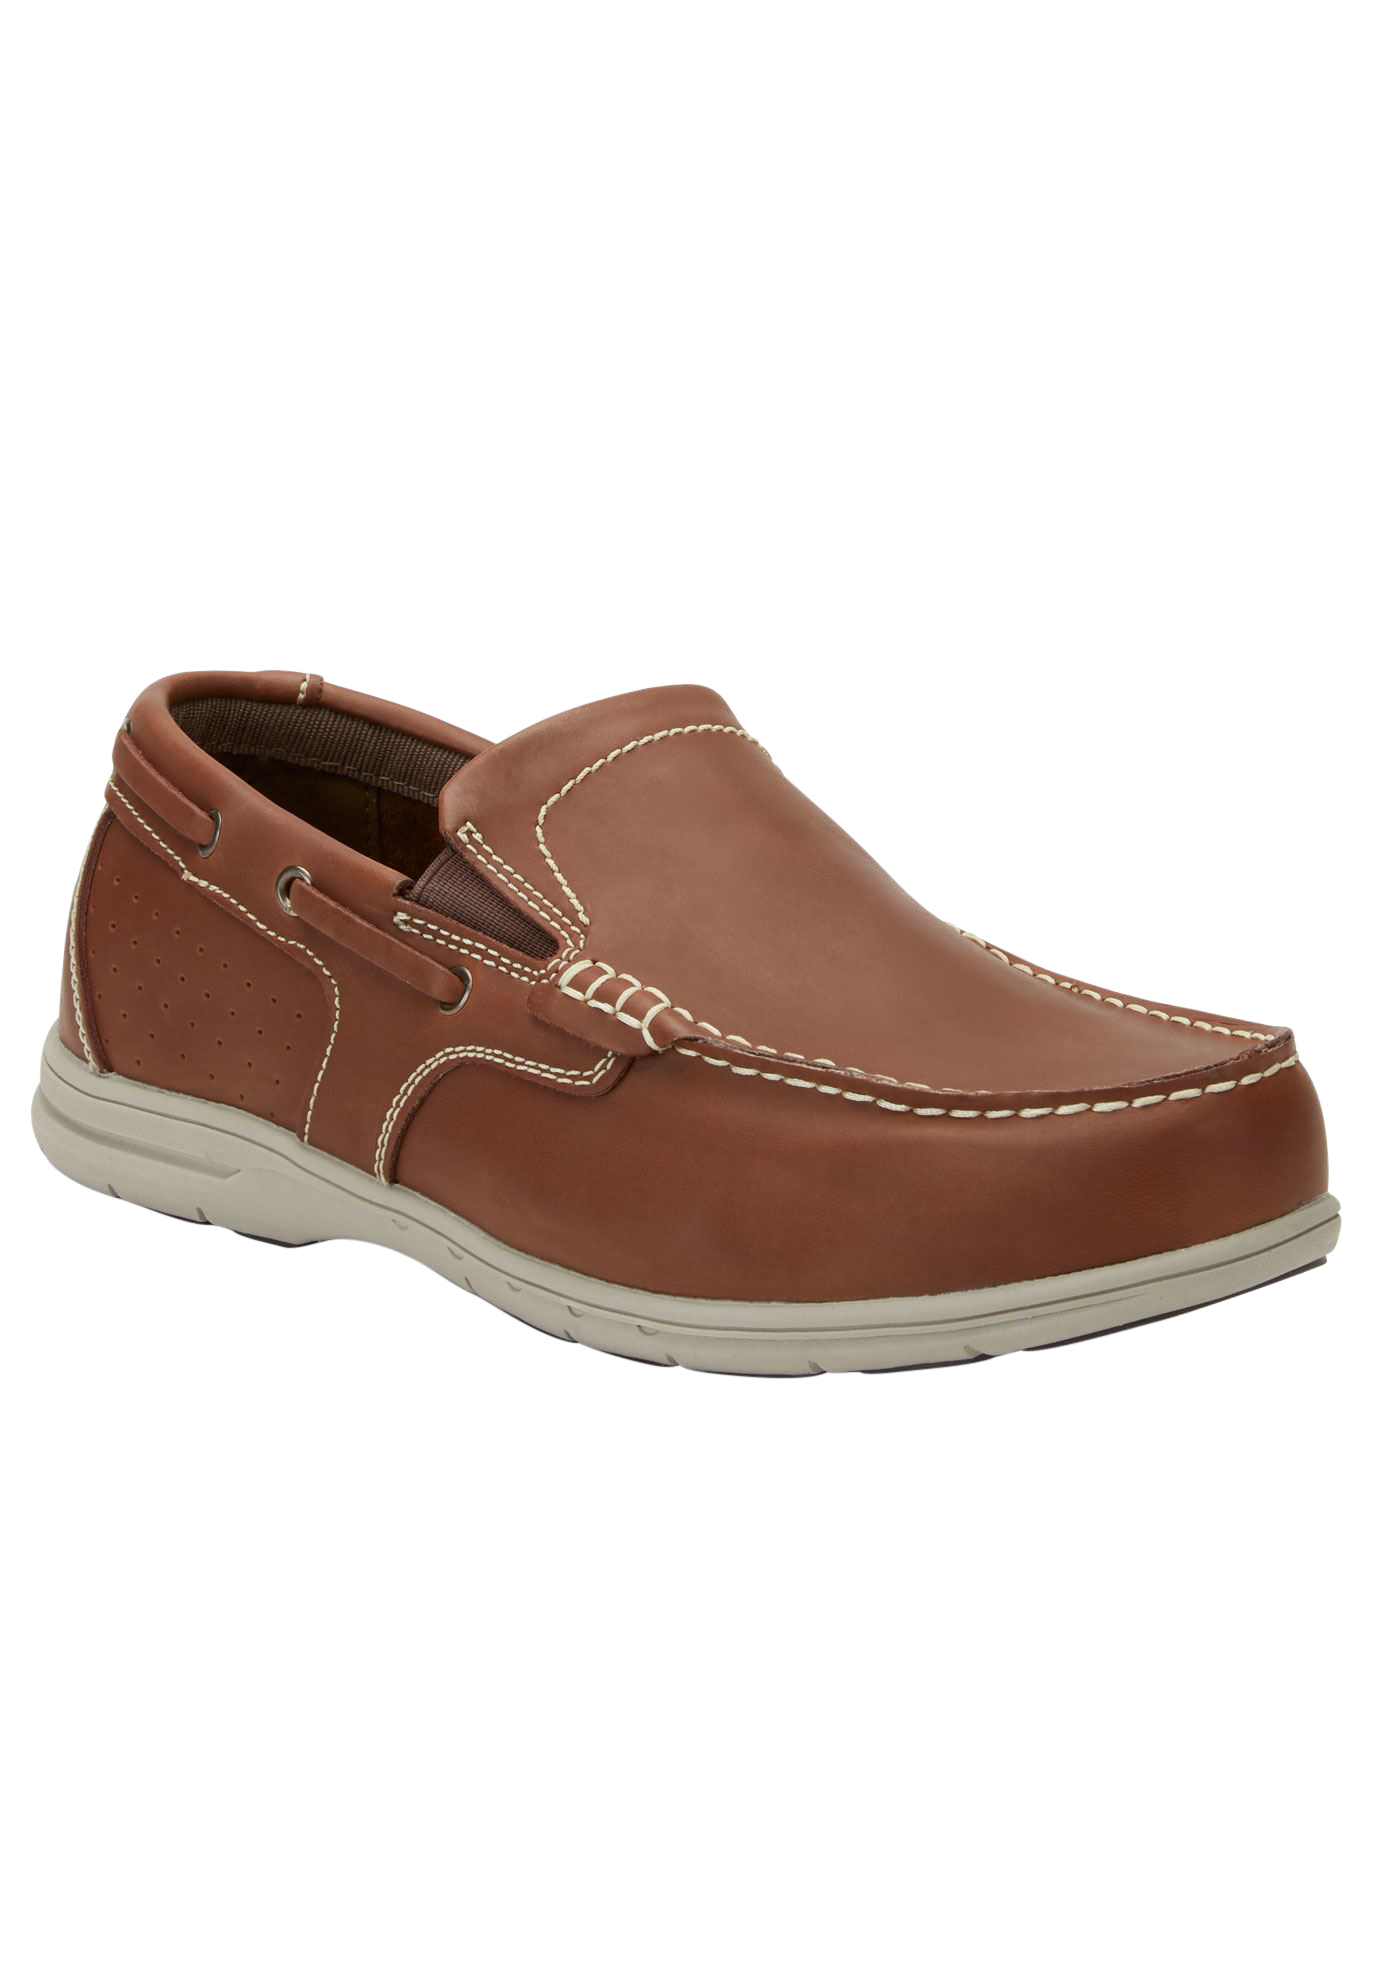 Boat Shoes Loafers Shoes